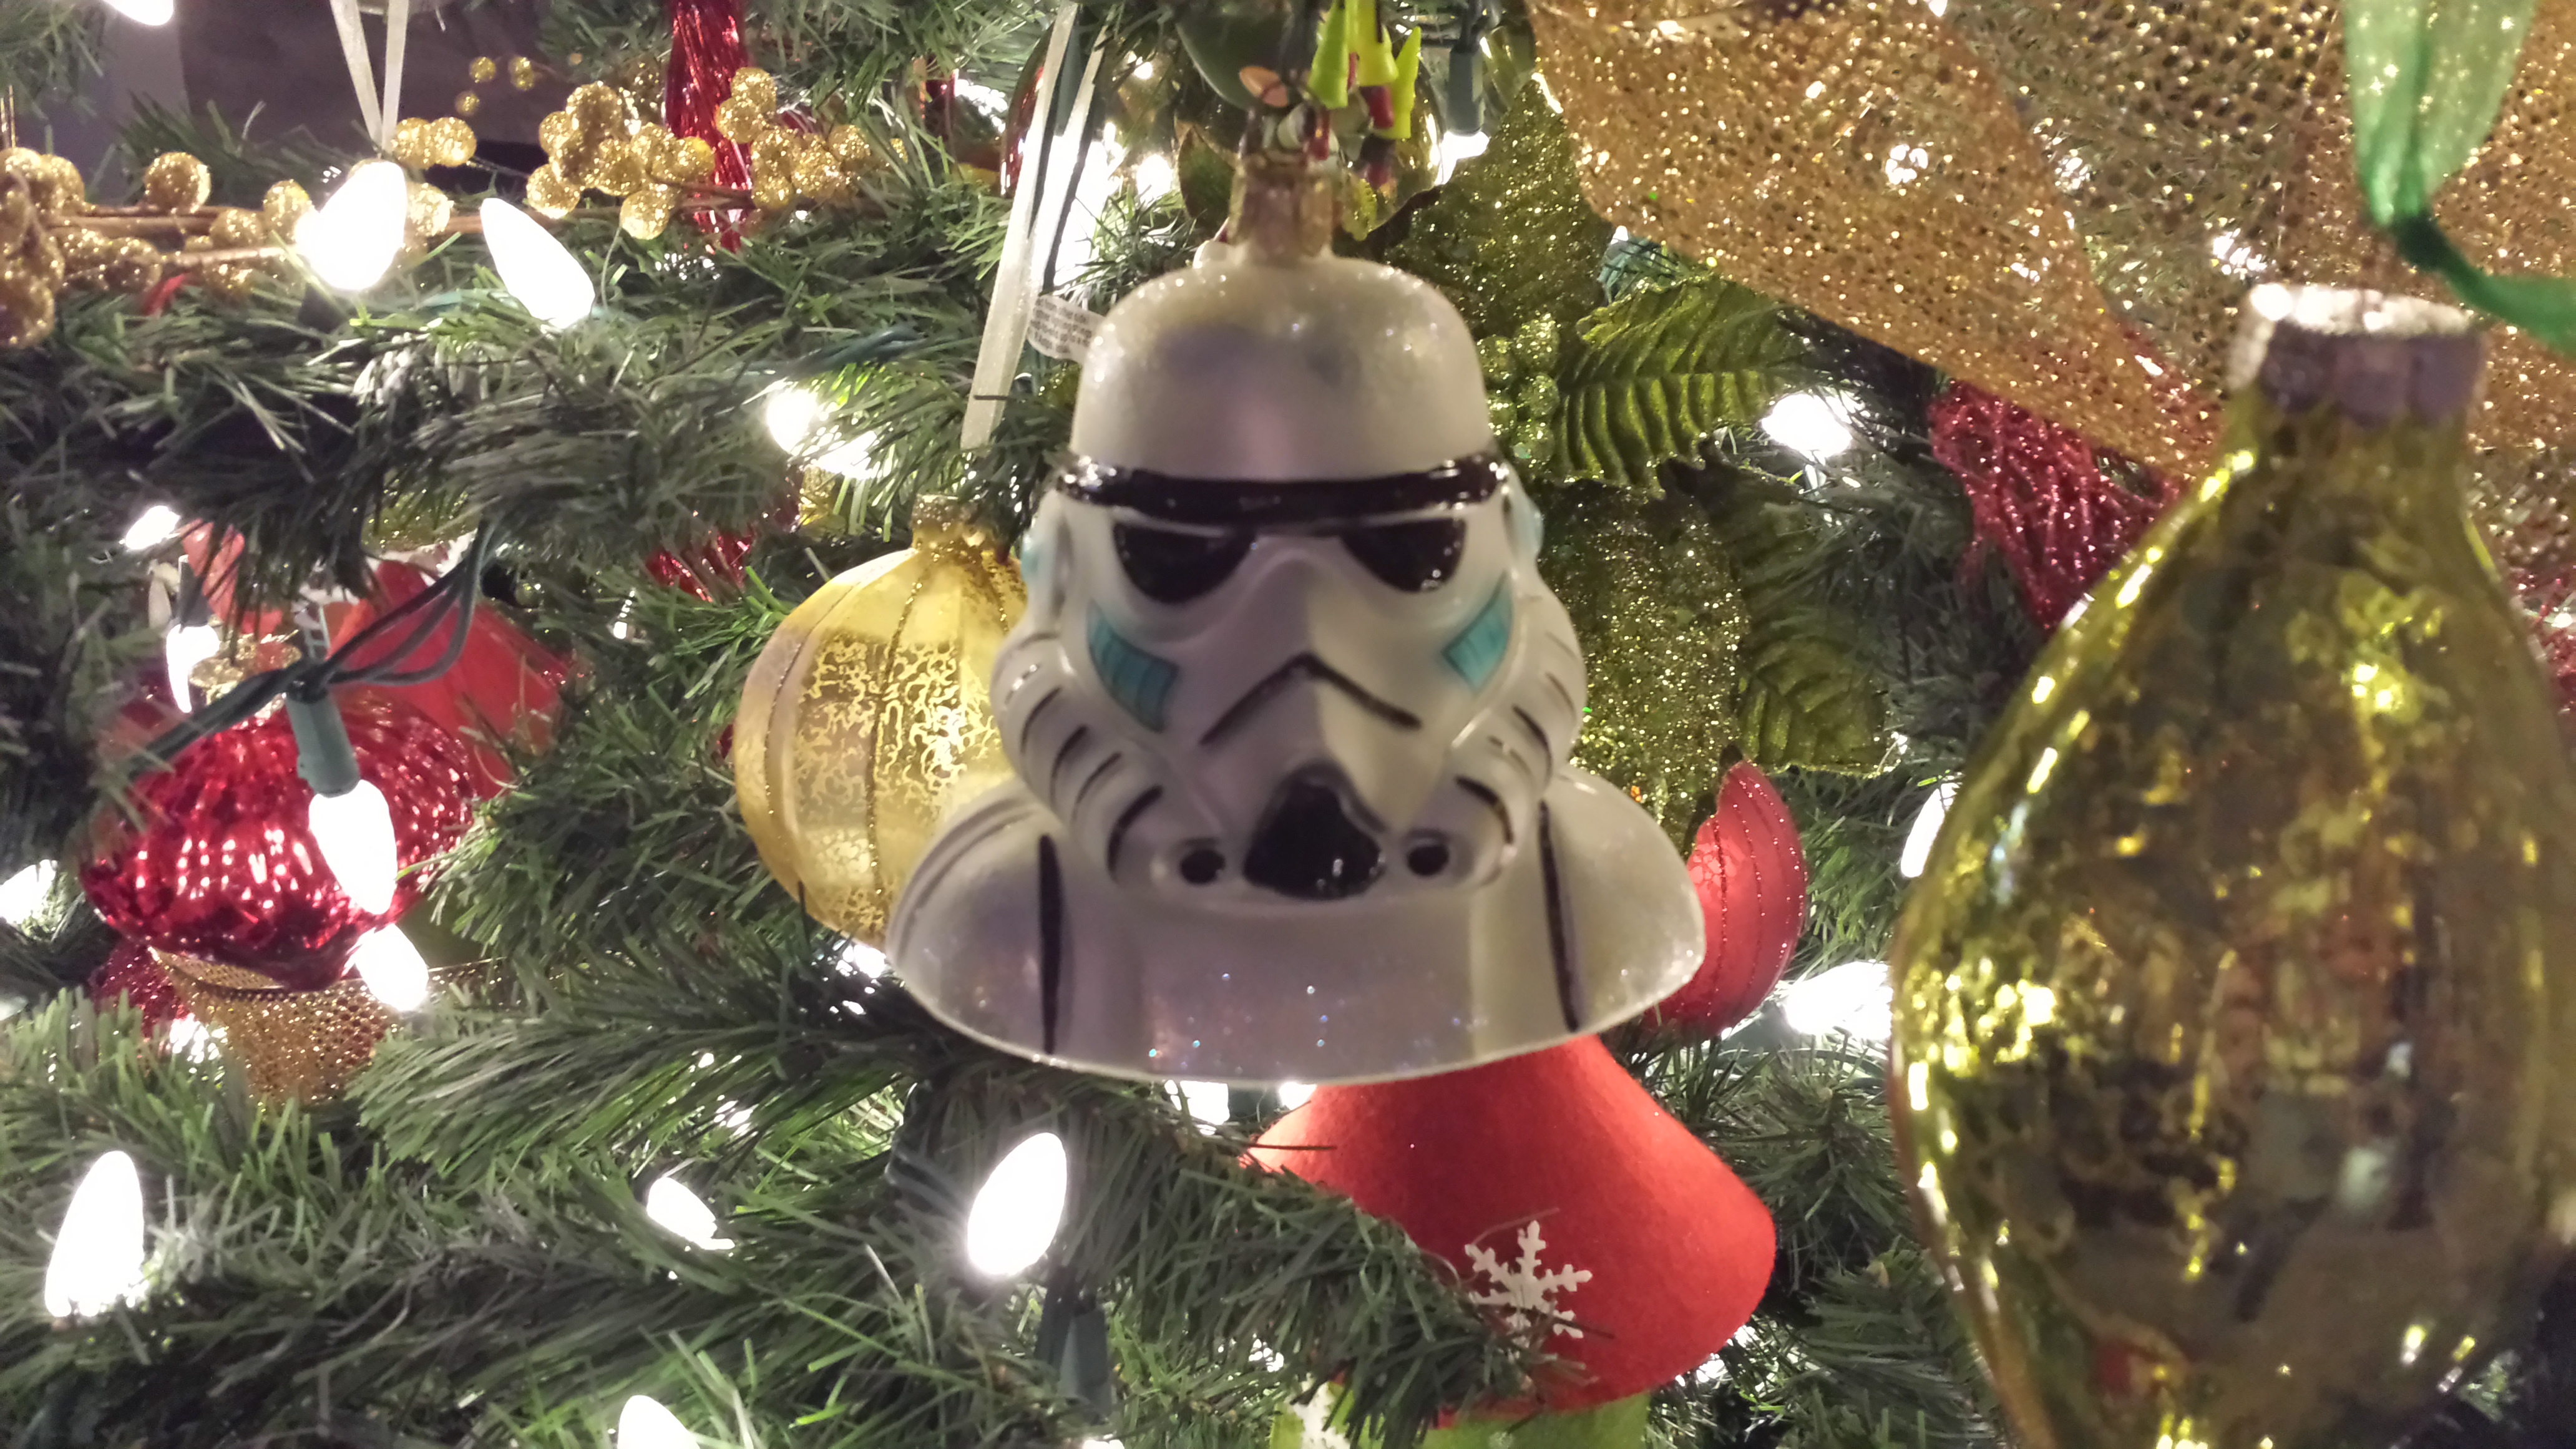 It's Christmas Decorating Time! Star Wars and The Village